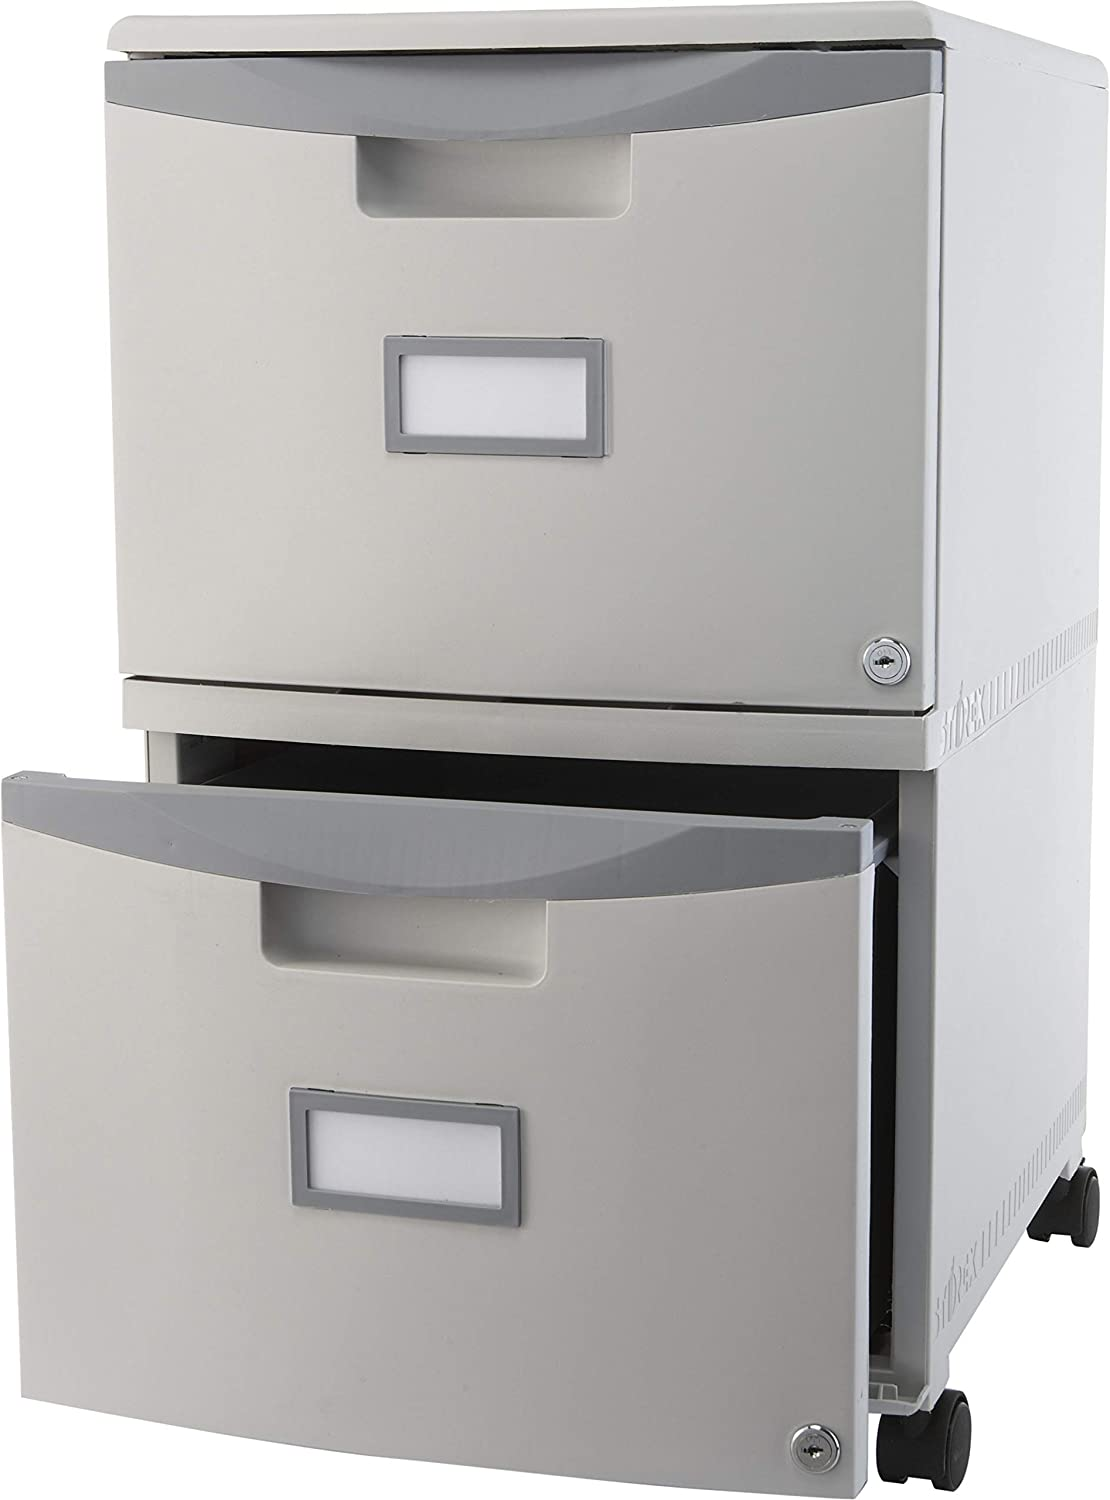 Storex Two Drawer Mobile File Cabinet With Lock 14 125 X 31 75 X 10 625 Inch Gray 61301b01c Amazon Ca Office Products